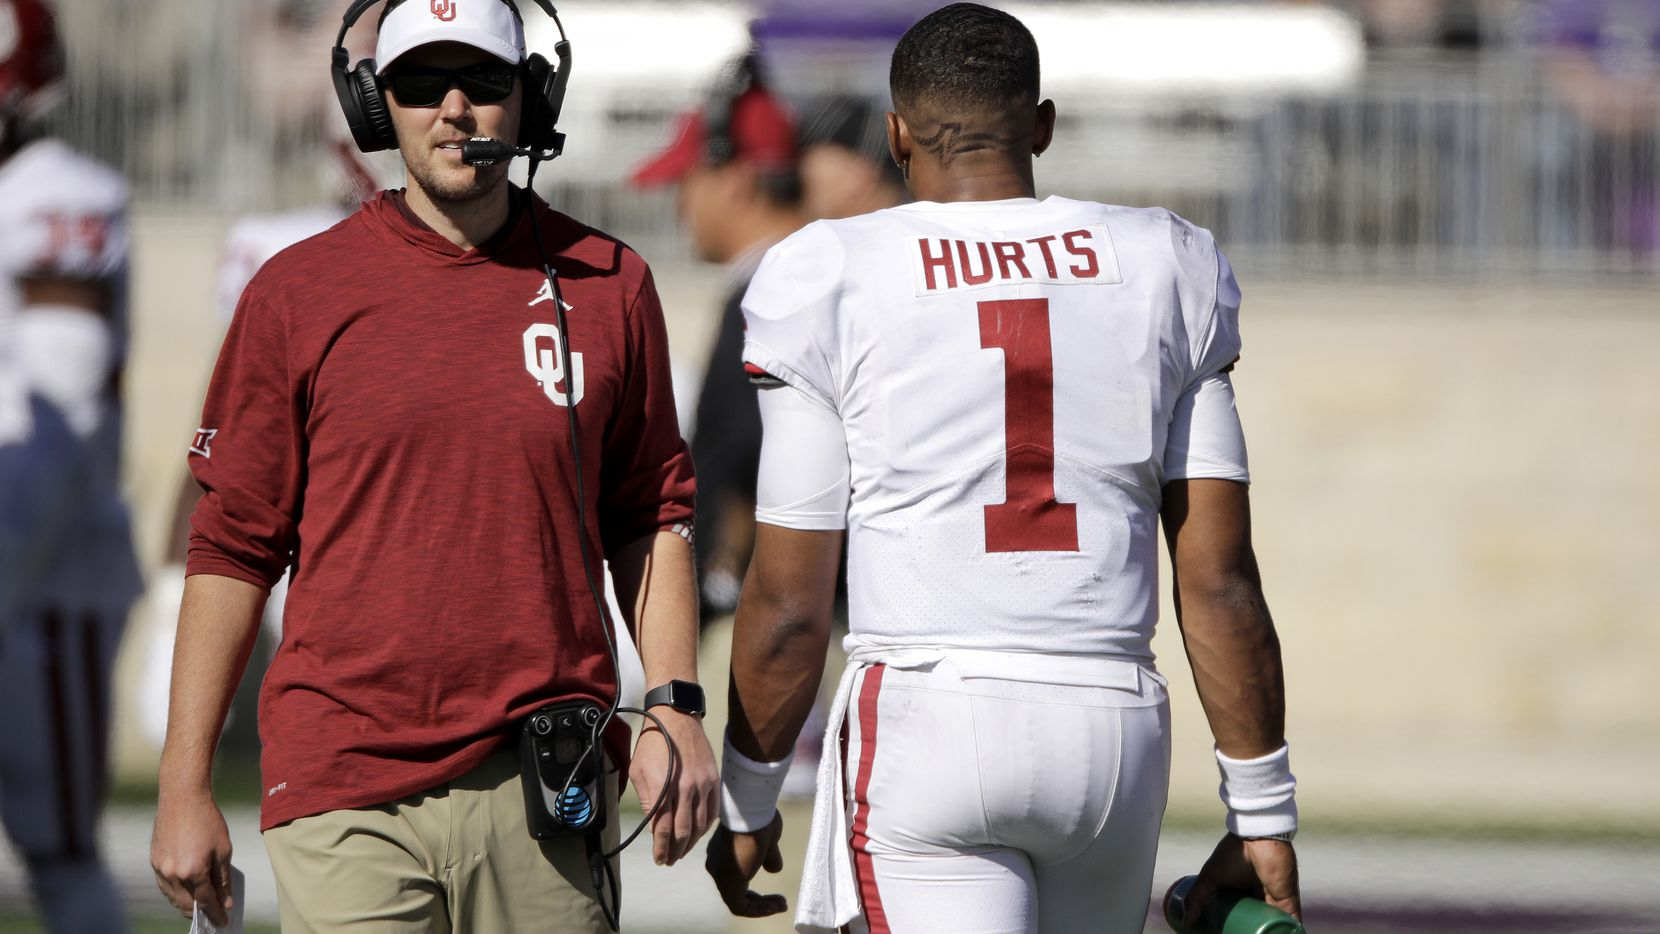 Oklahoma quarterback Jalen Hurts (1) and head coach Lincoln Riley pass each other on the sideline during the final moments of an NCAA college football game against Kansas State Saturday, Oct. 26, 2019, in Manhattan, Kan. Kansas State won 48-41. (AP Photo/Charlie Riedel)